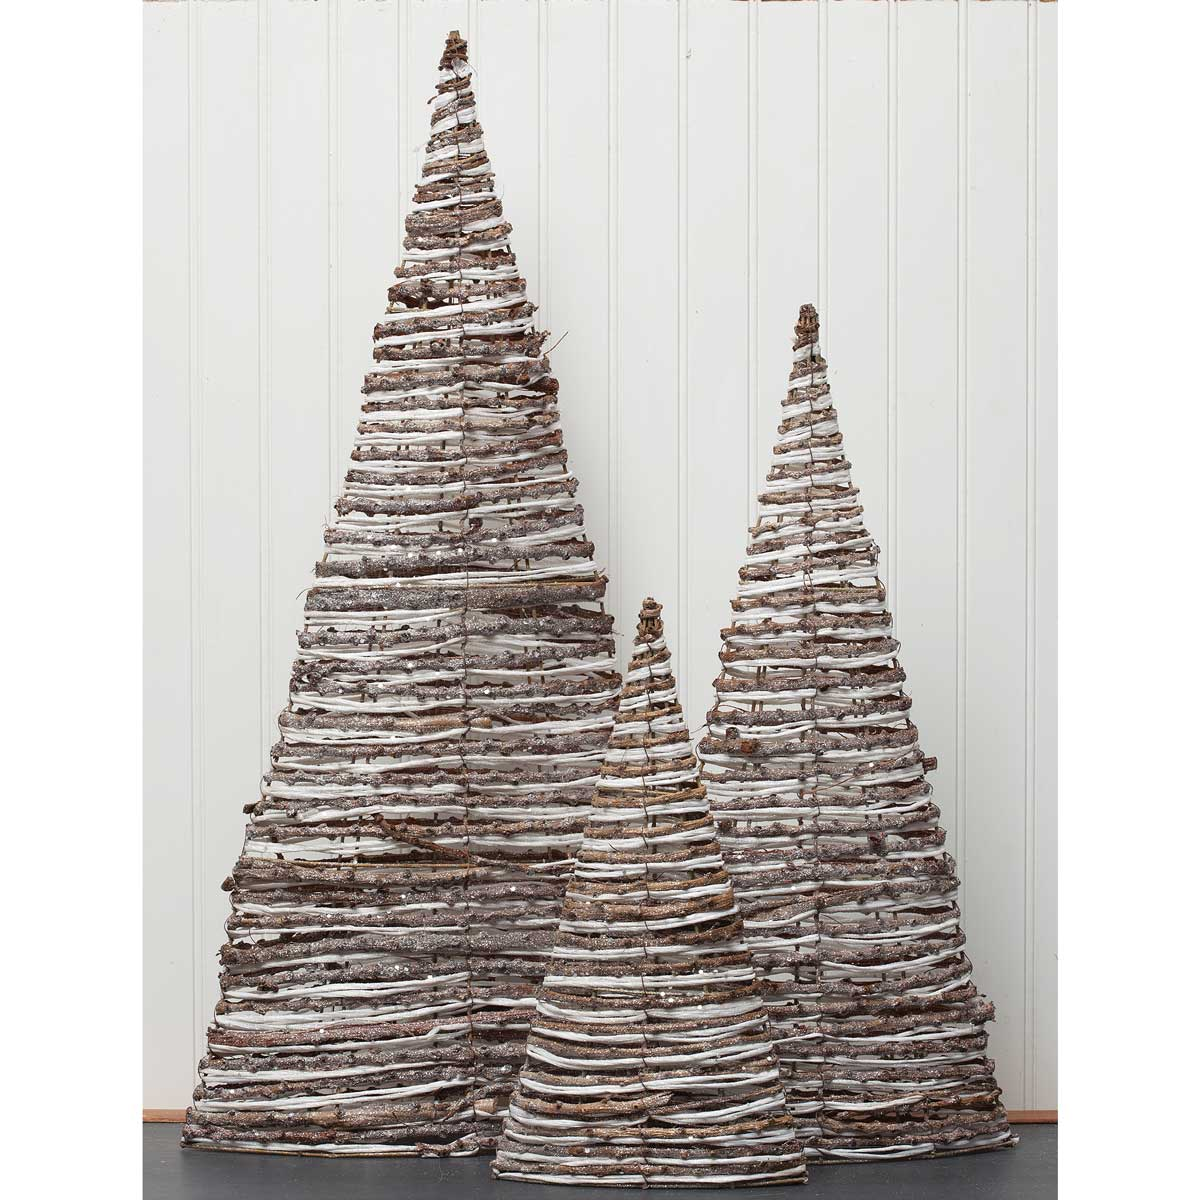 SOUTHERN CHIC TWIG CONE TREE SET OF 3